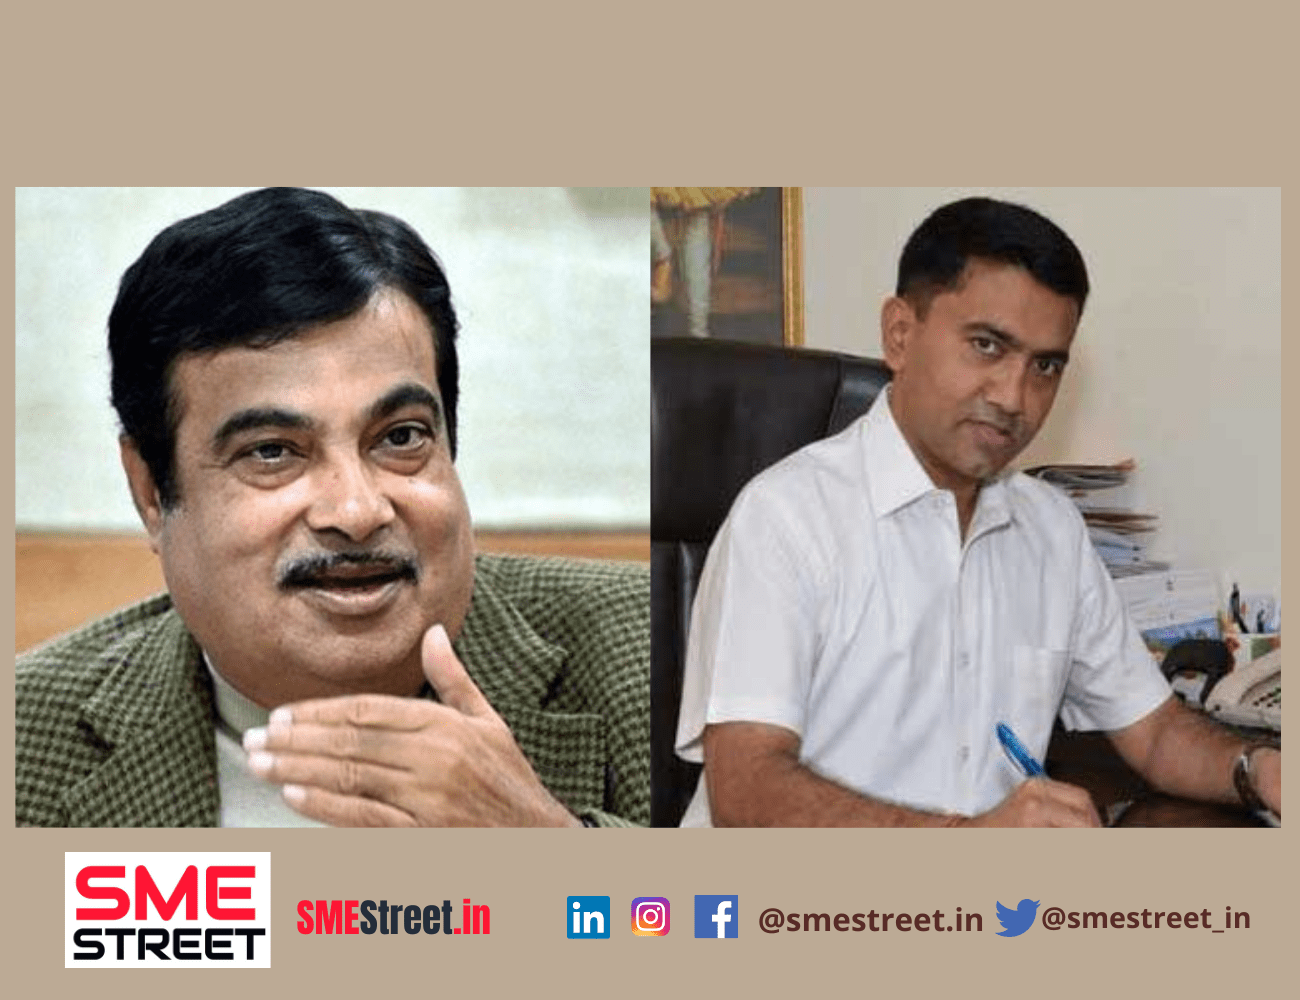 Goa CM Met Nitin Gadkari to Discuss Infra Projects